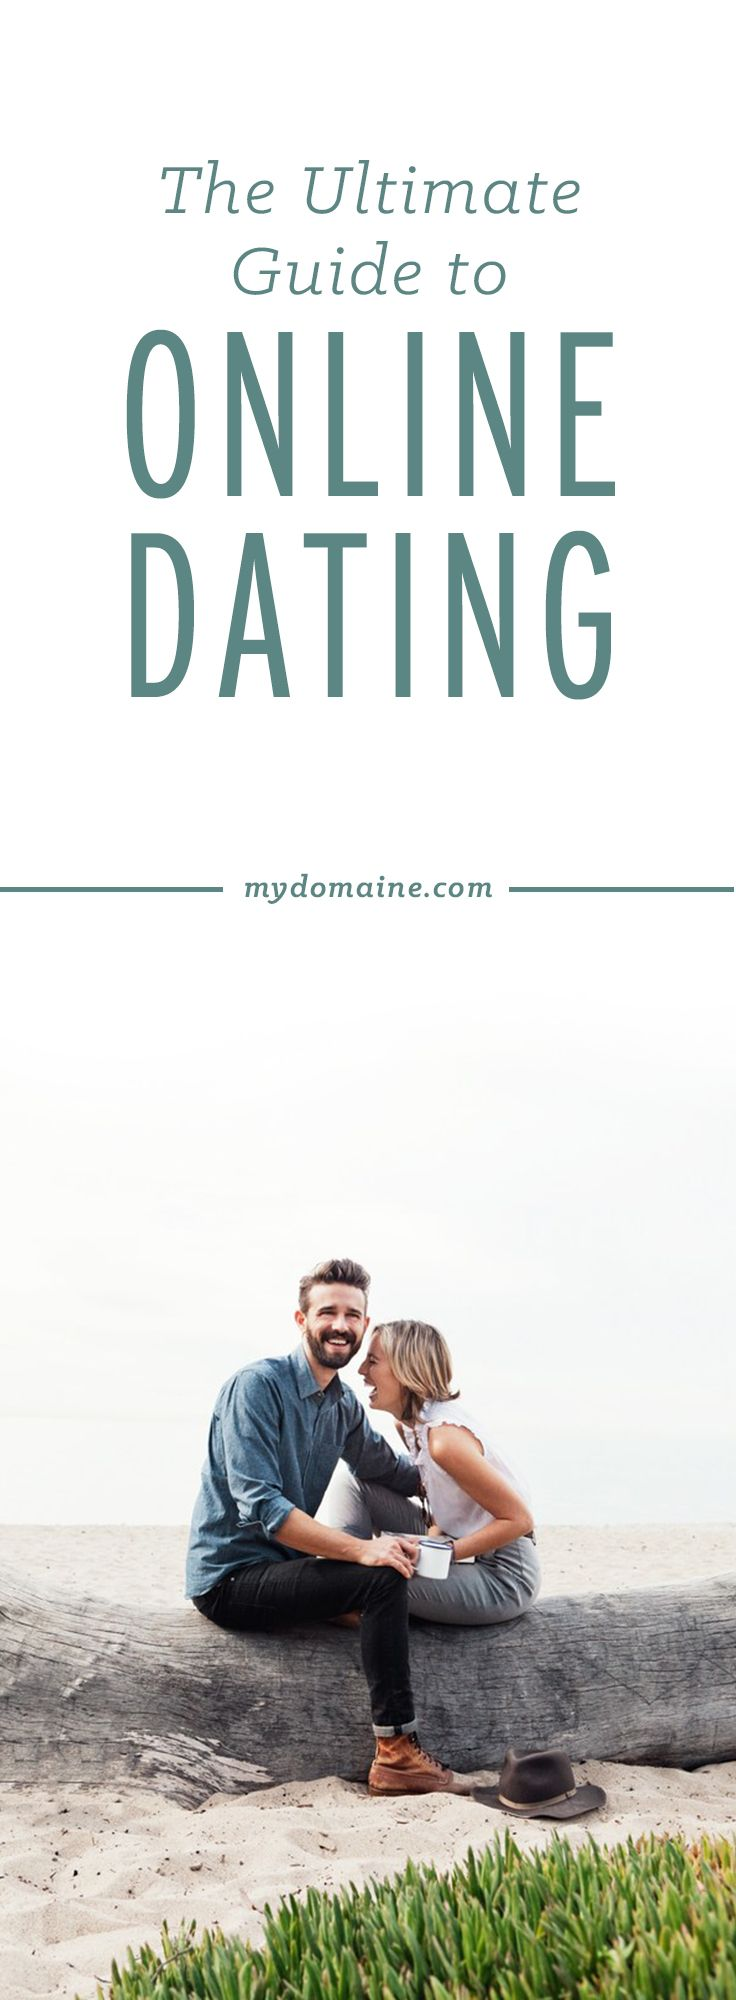 10 Essential Online Dating Tips